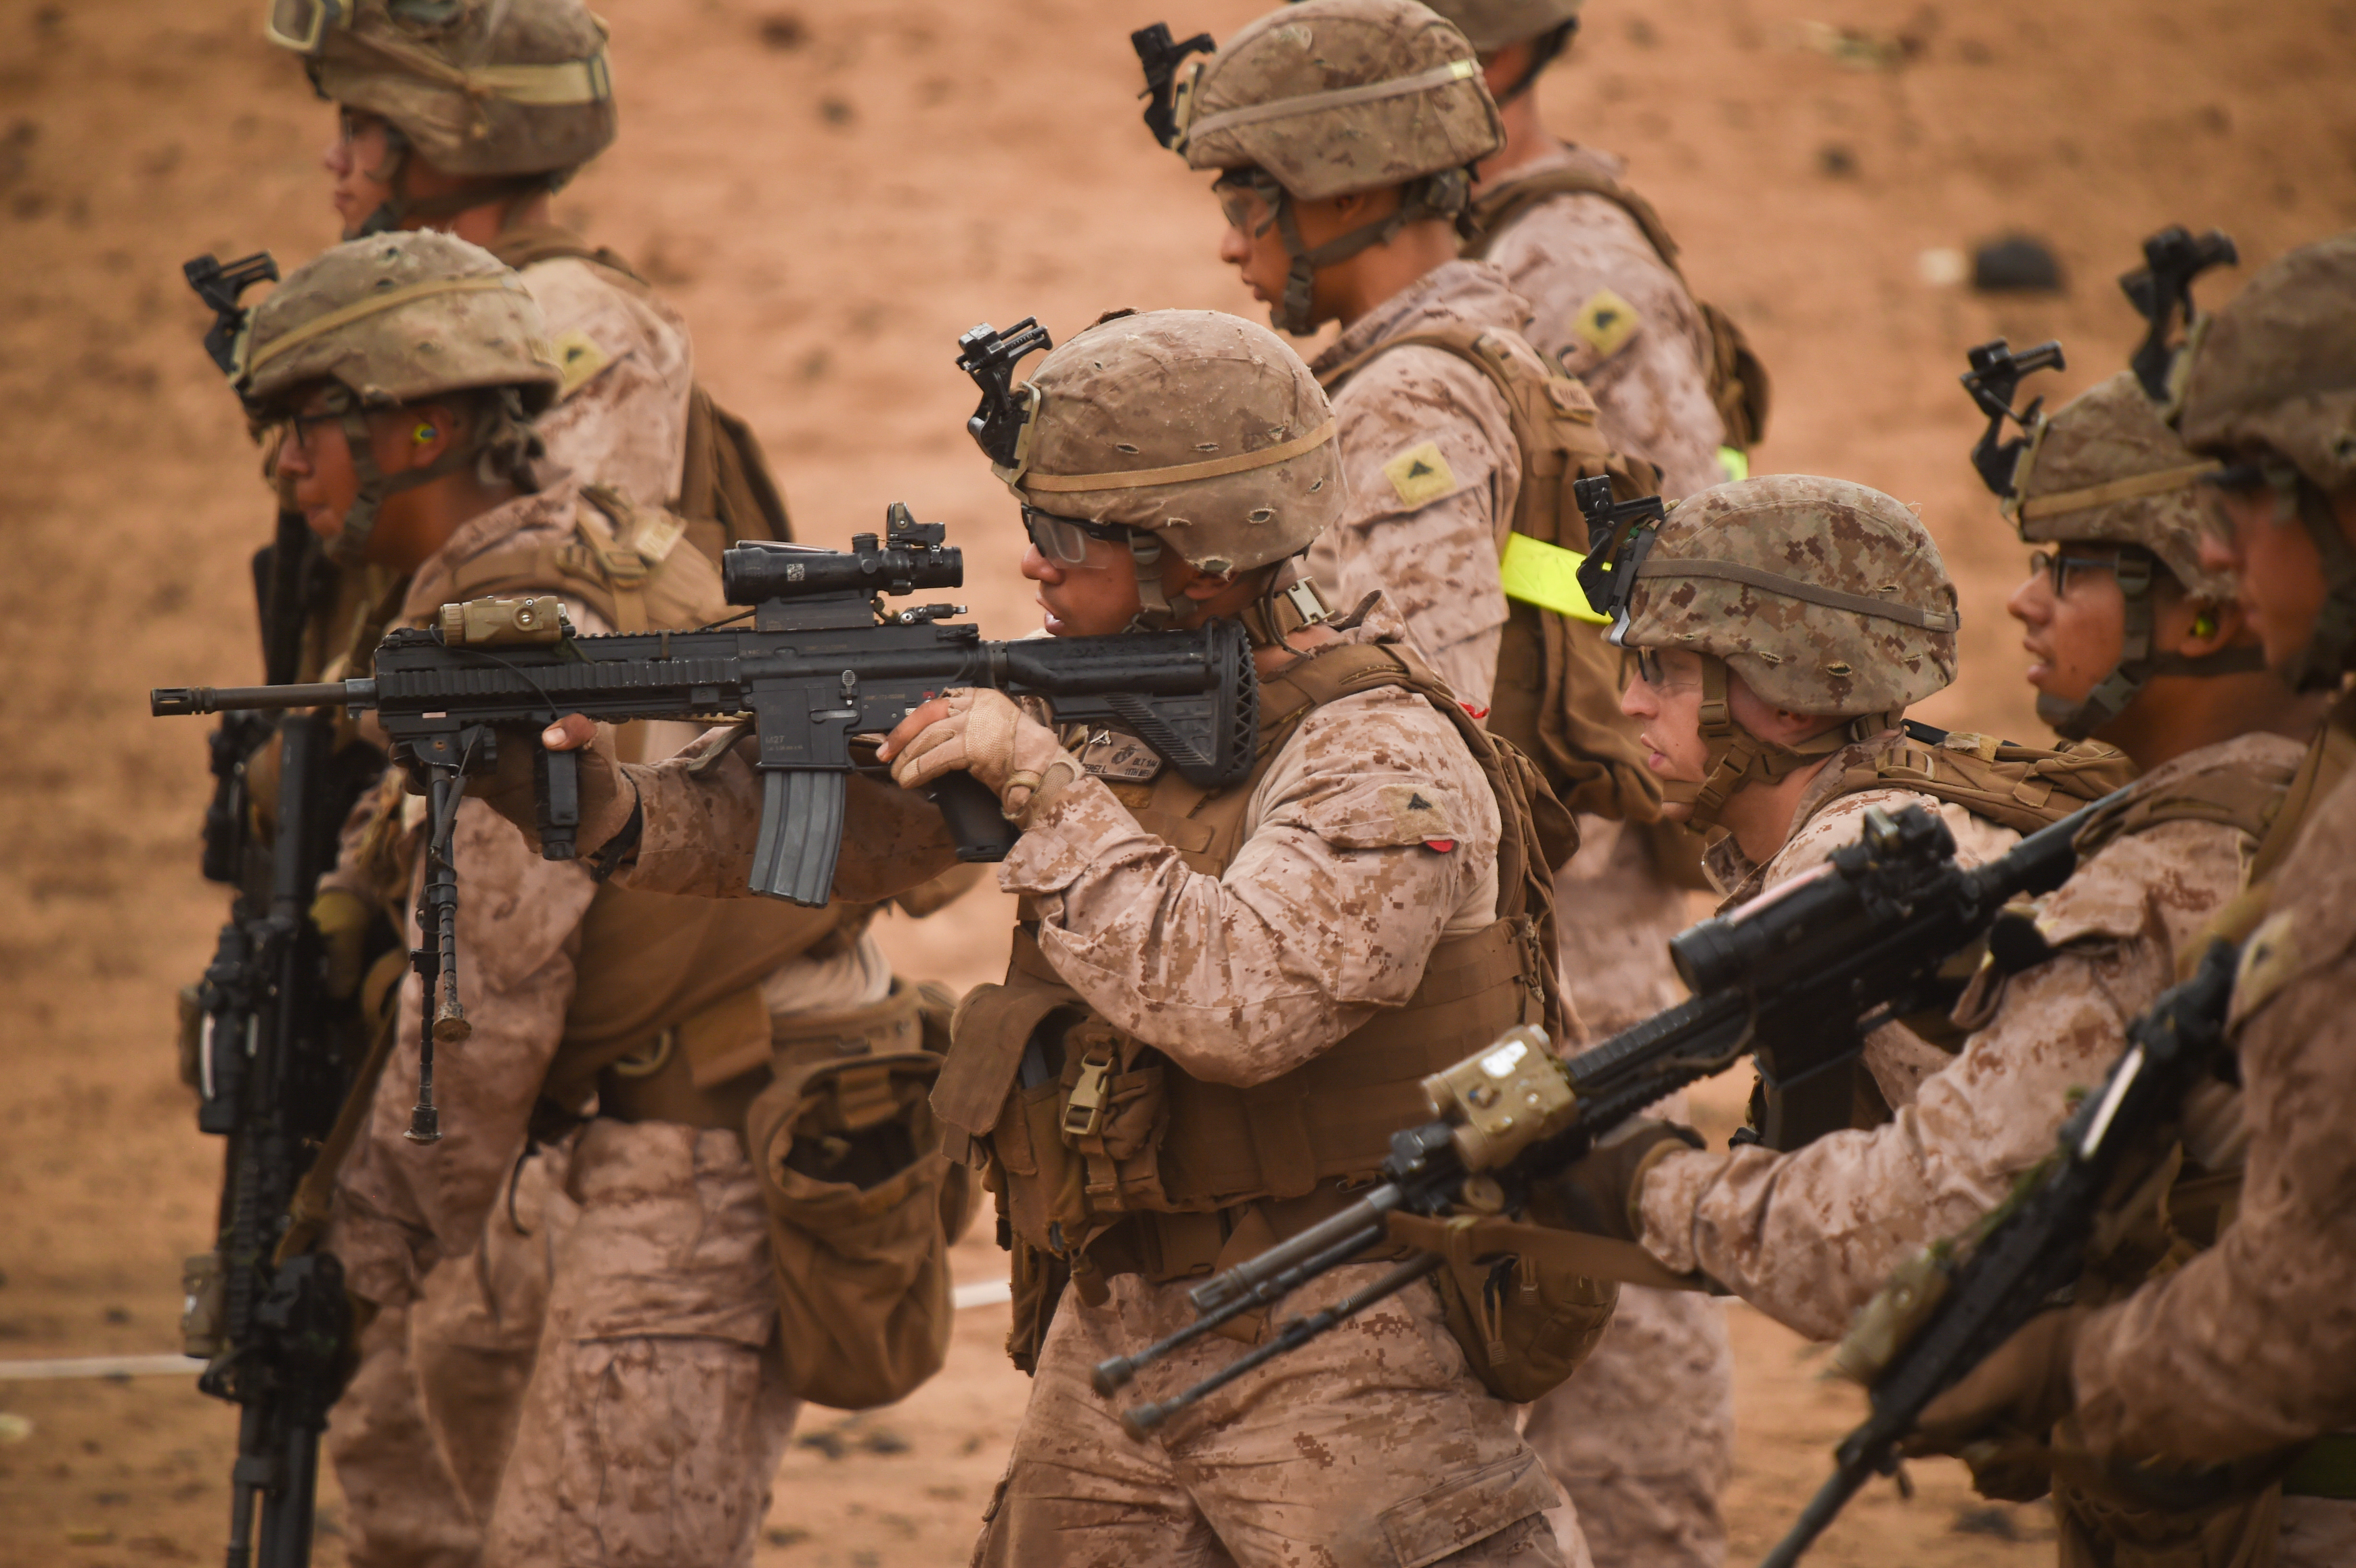 U.S. Marines with Alpha Company, 1st Battalion, 11th Marine Expeditionary Unit (MEU), focus downrange during a Combat Marksmanship Program shoot, Feb. 14, 2017, at Arta Beach in Djibouti. Marines worked on engaging a target while moving and under physical stress. The time on the range allows the 11th MEU to maintain their respective skills and proficiencies. (U.S. Air National Guard photo by Staff Sgt. Penny Snoozy)